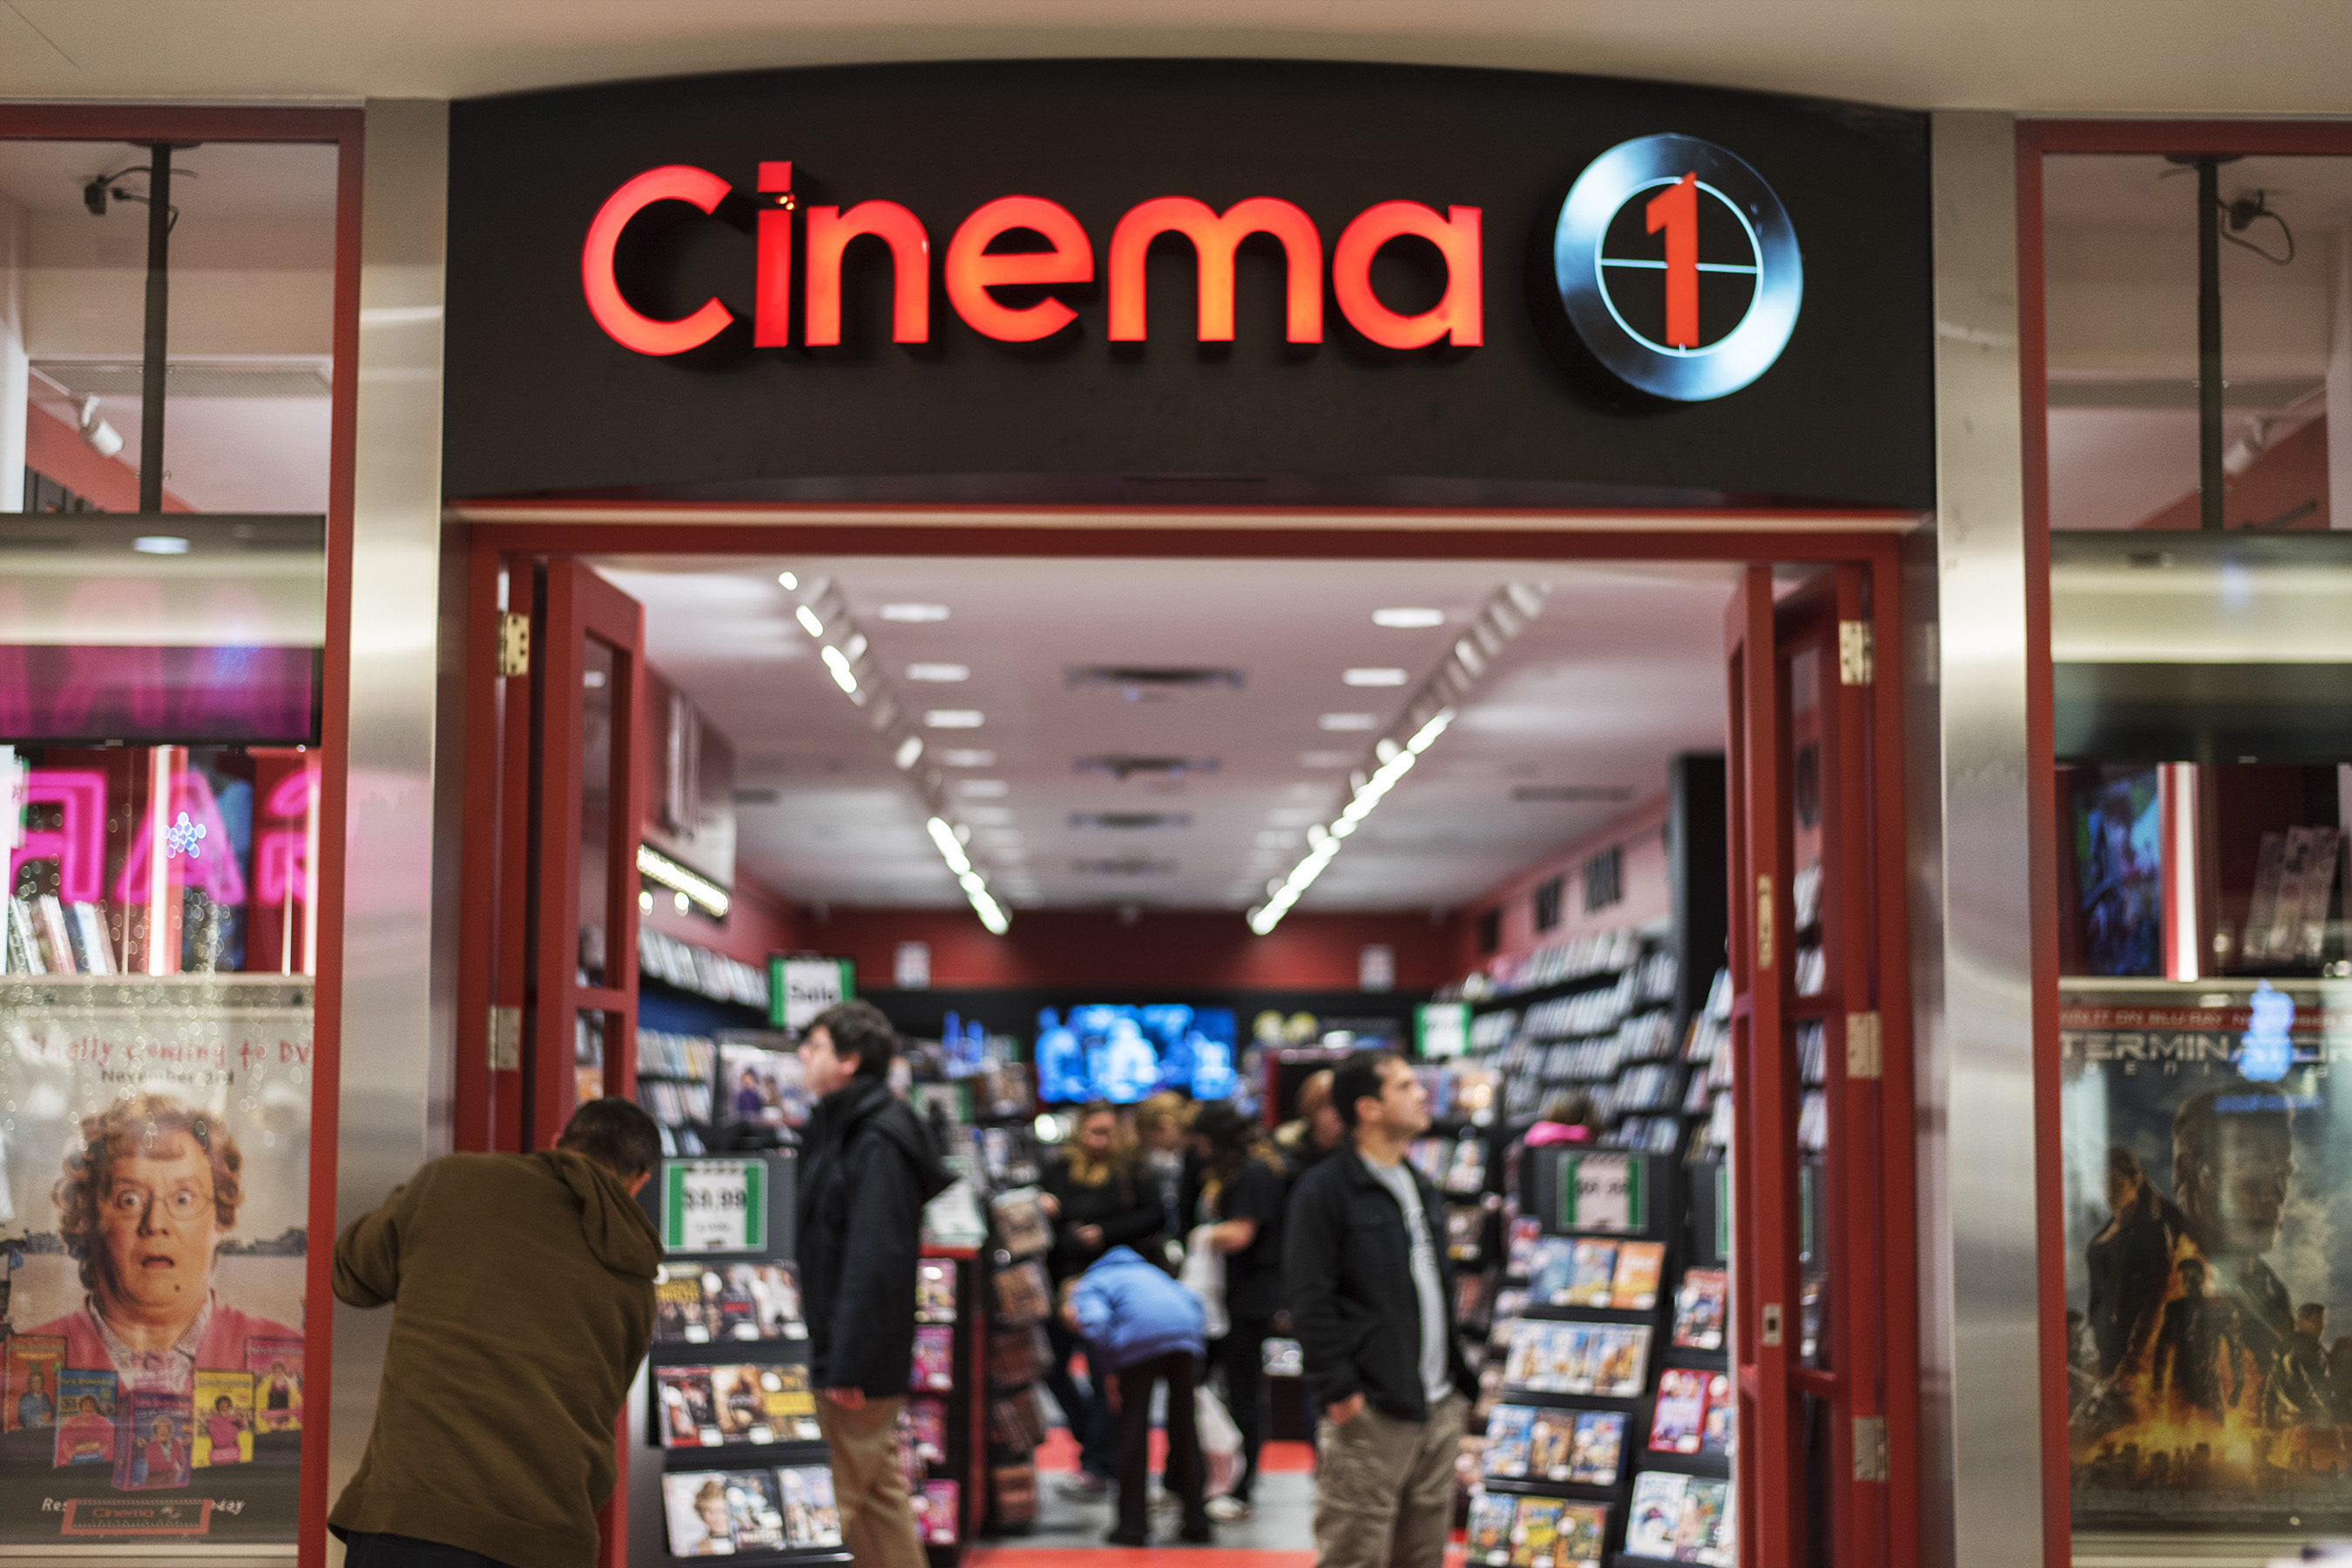 Cinema 1 storefront in Stone Road Mall, Guelph, ON